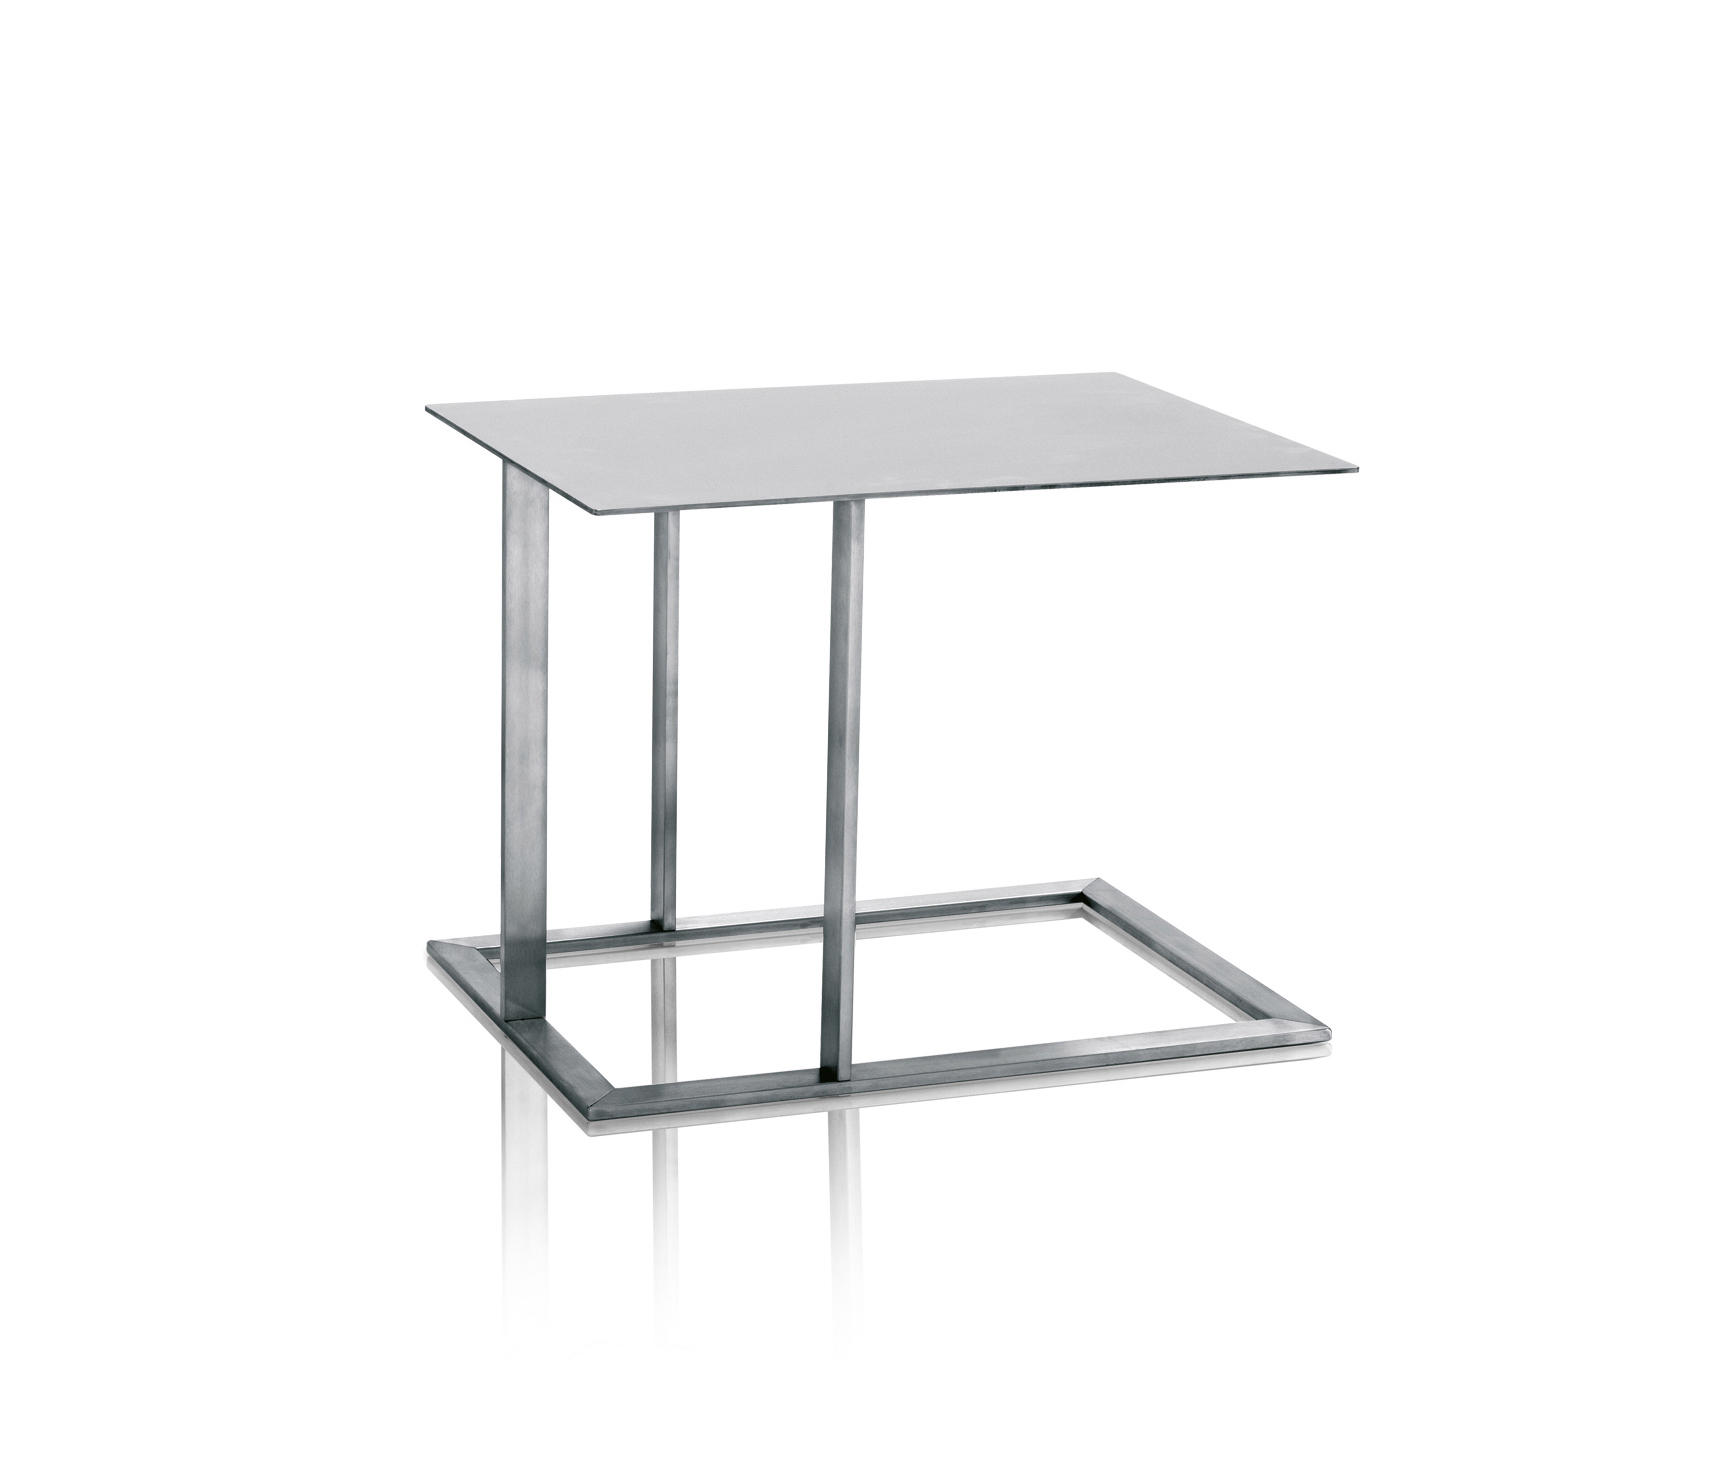 LOFT Side tables from Arketipo